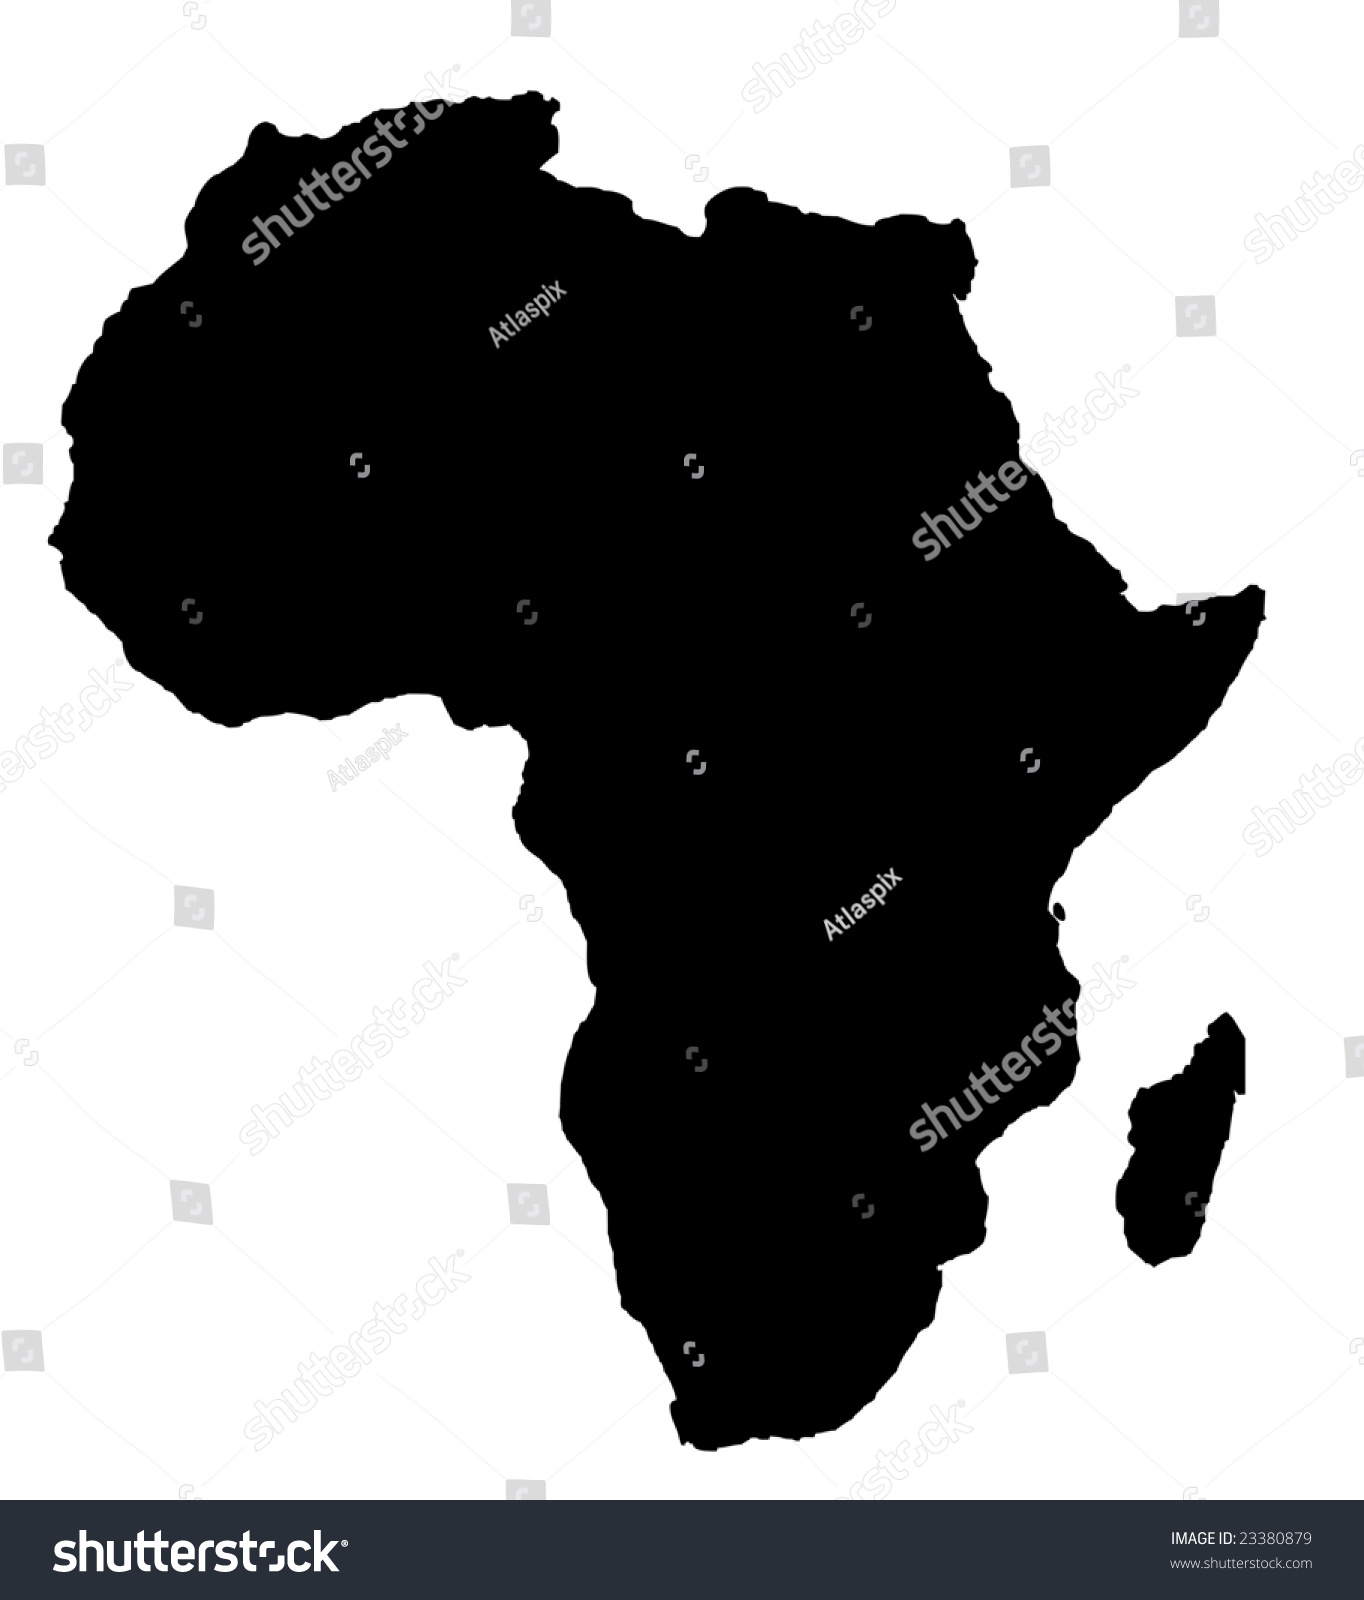 outline map africa continent black isolated stock illustration